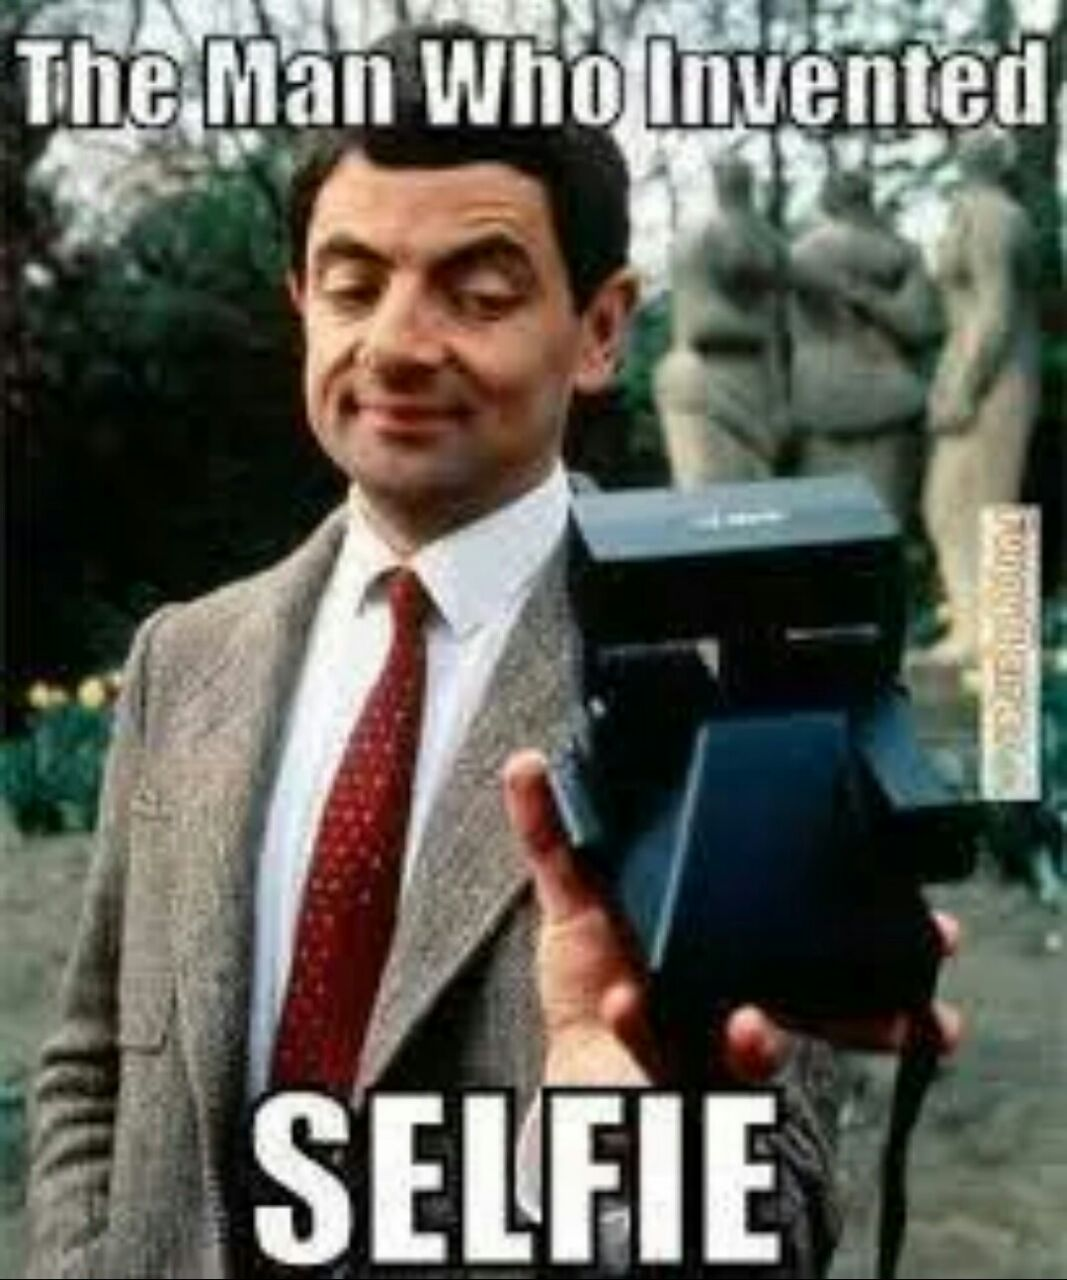 Funny Mr Bean Meme : Selfie humor facebook graphic inventor of the